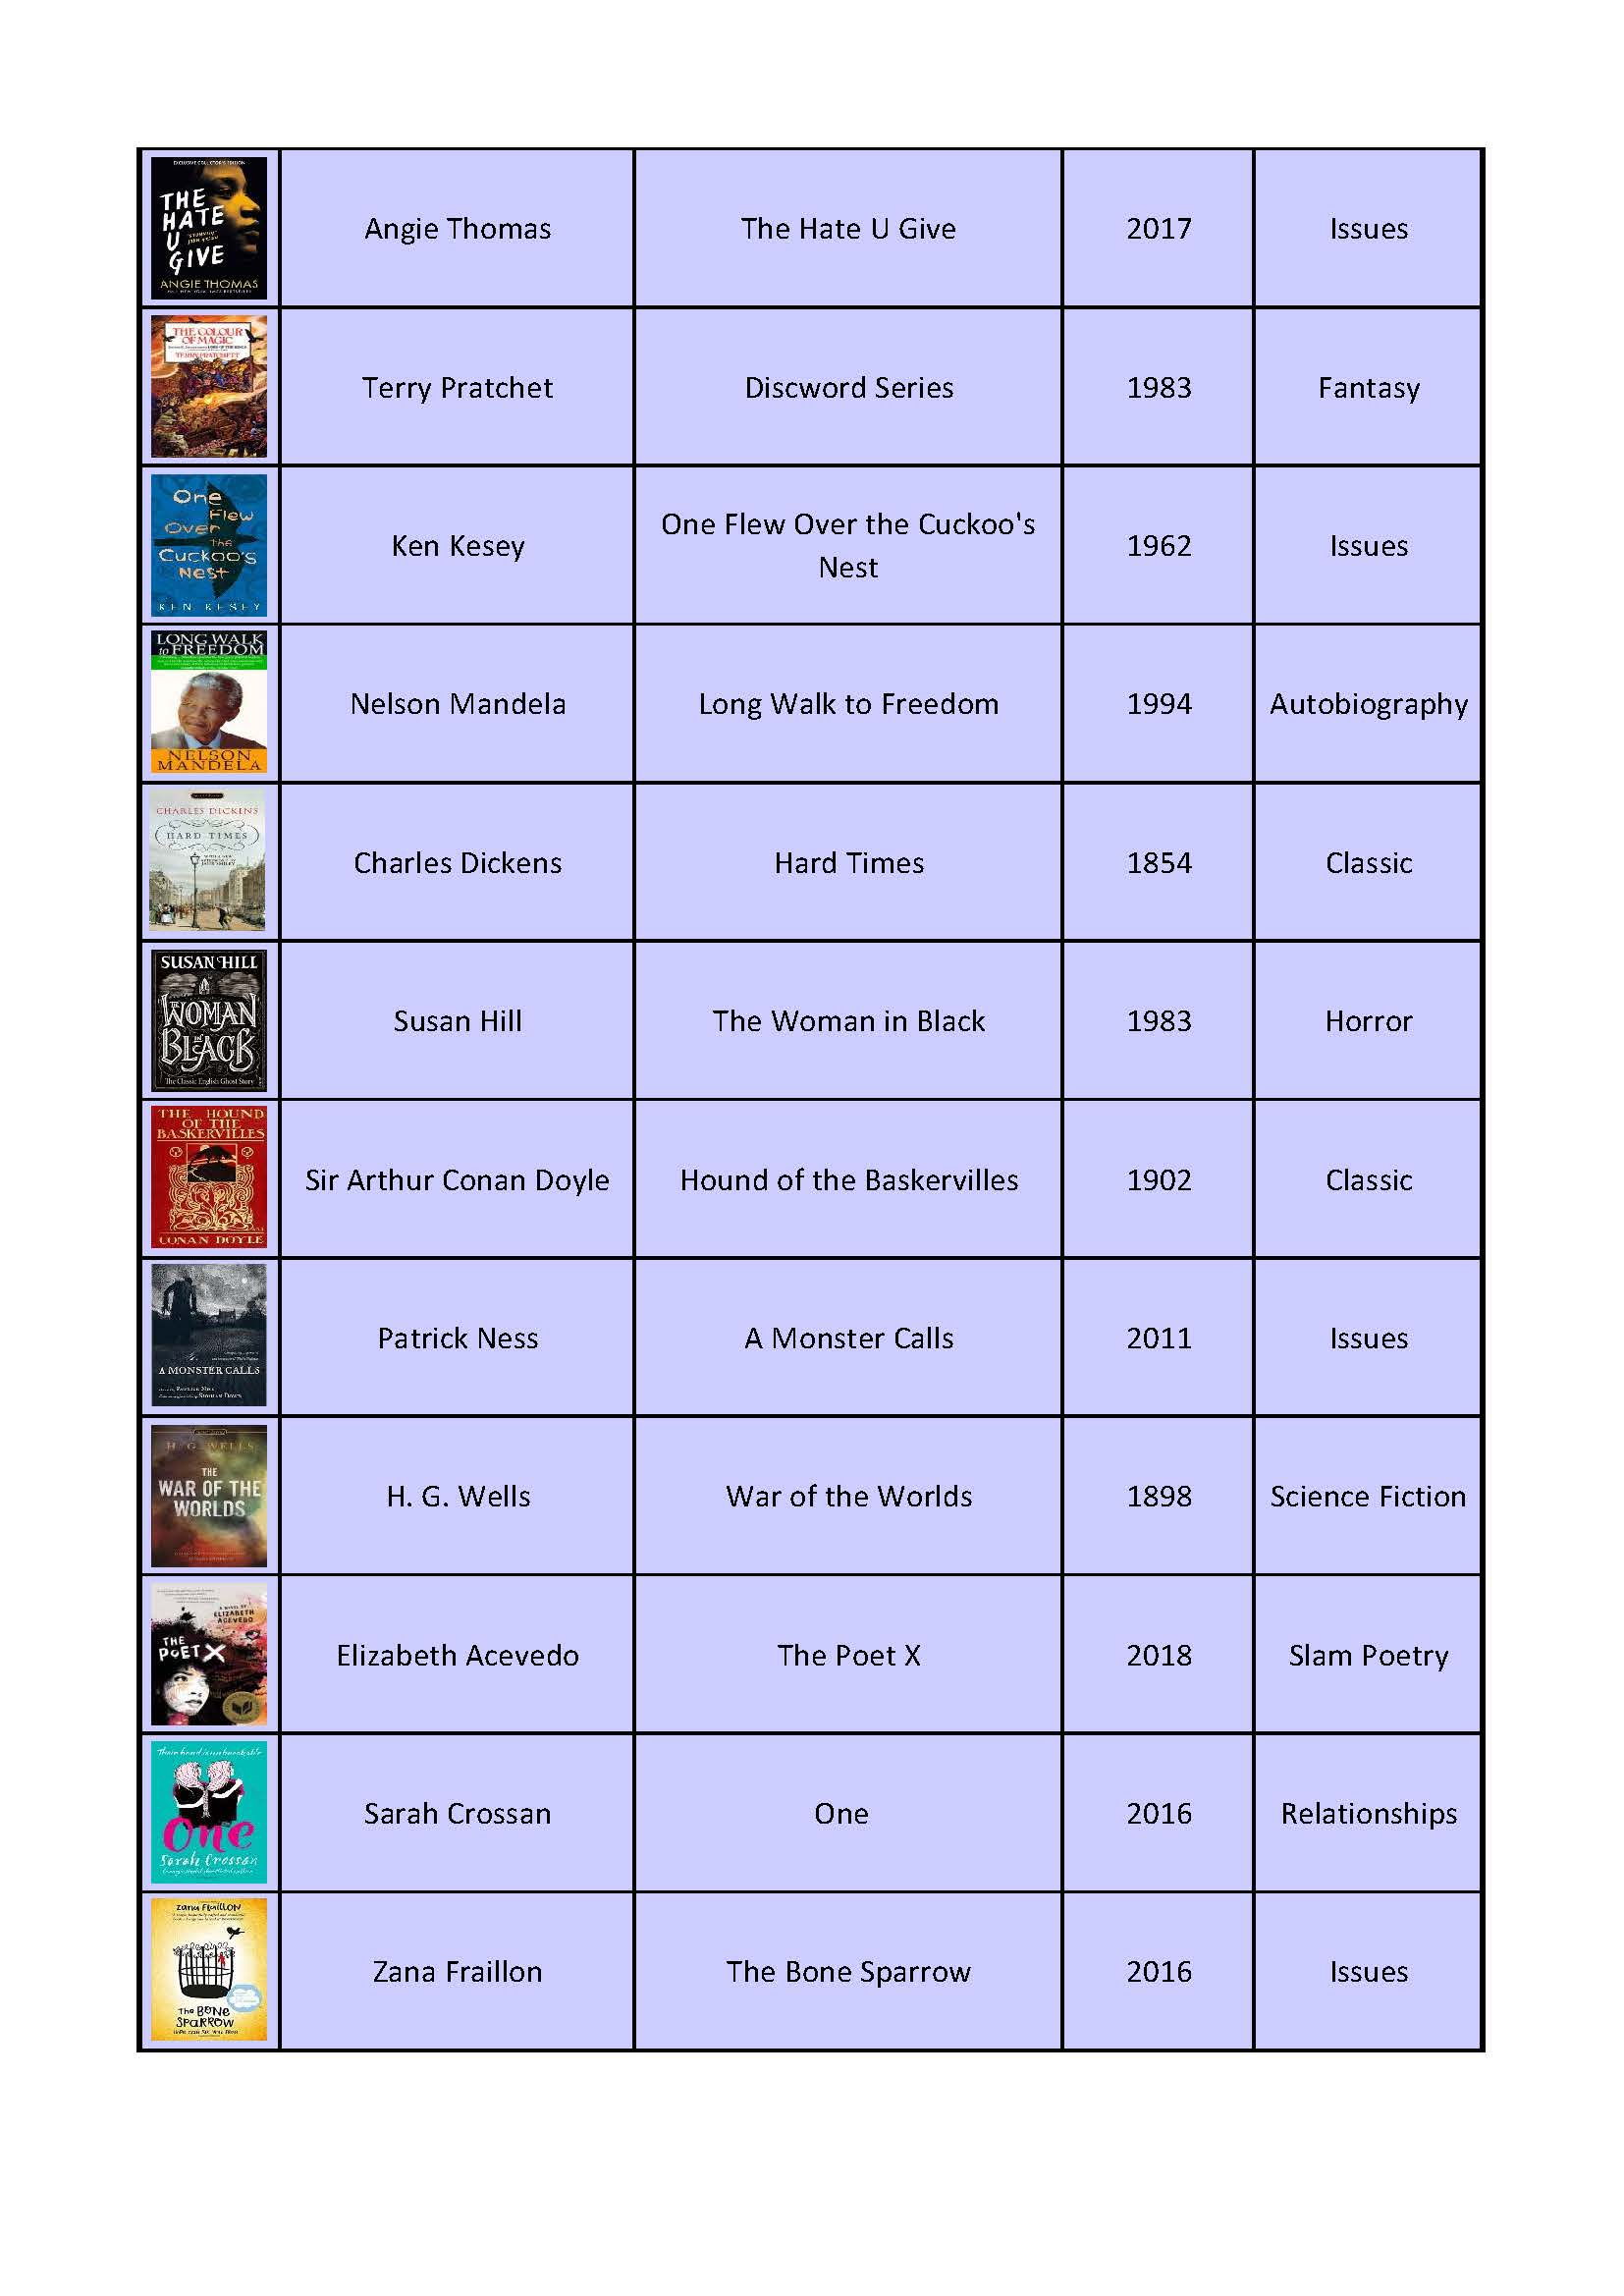 Priory Plus Reading List with images KS4_Page_3.jpg